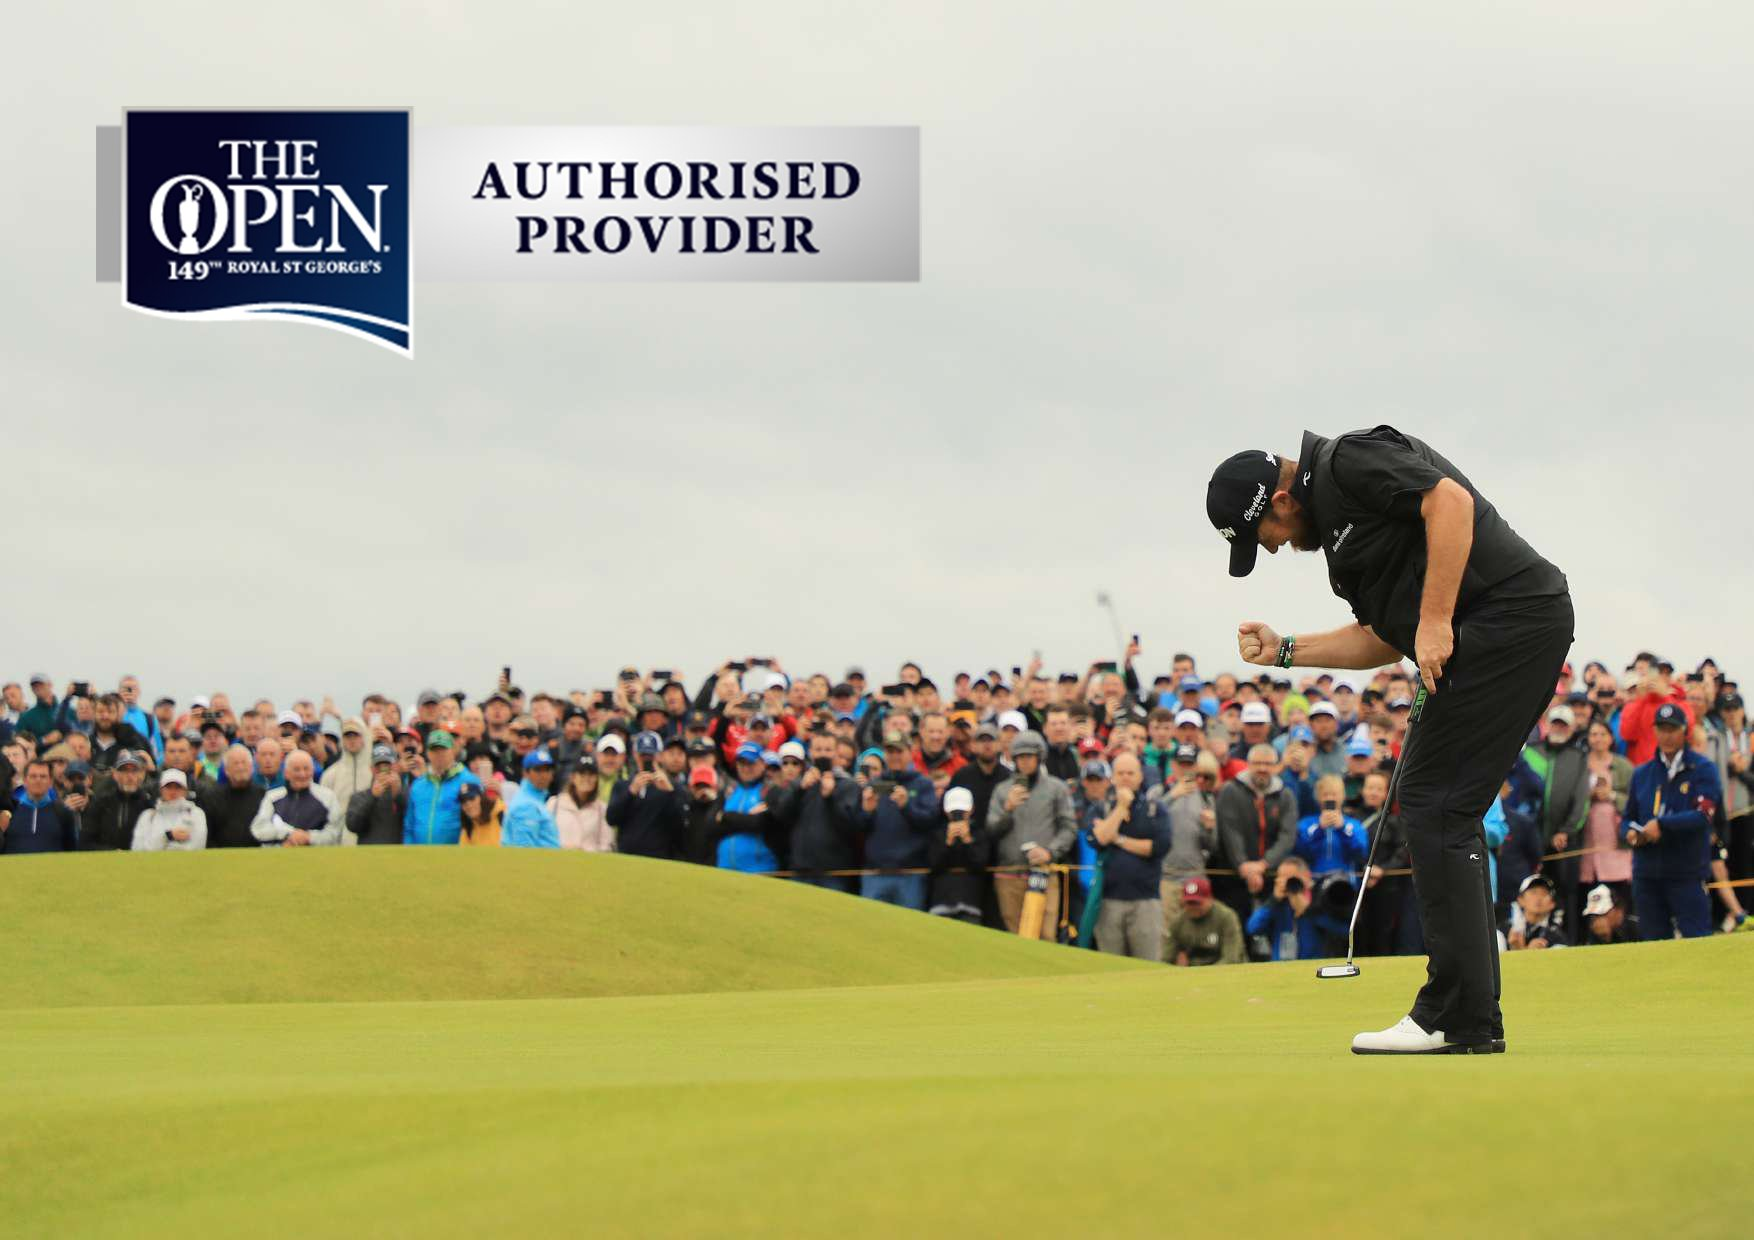 149TH Open Championship Brochure